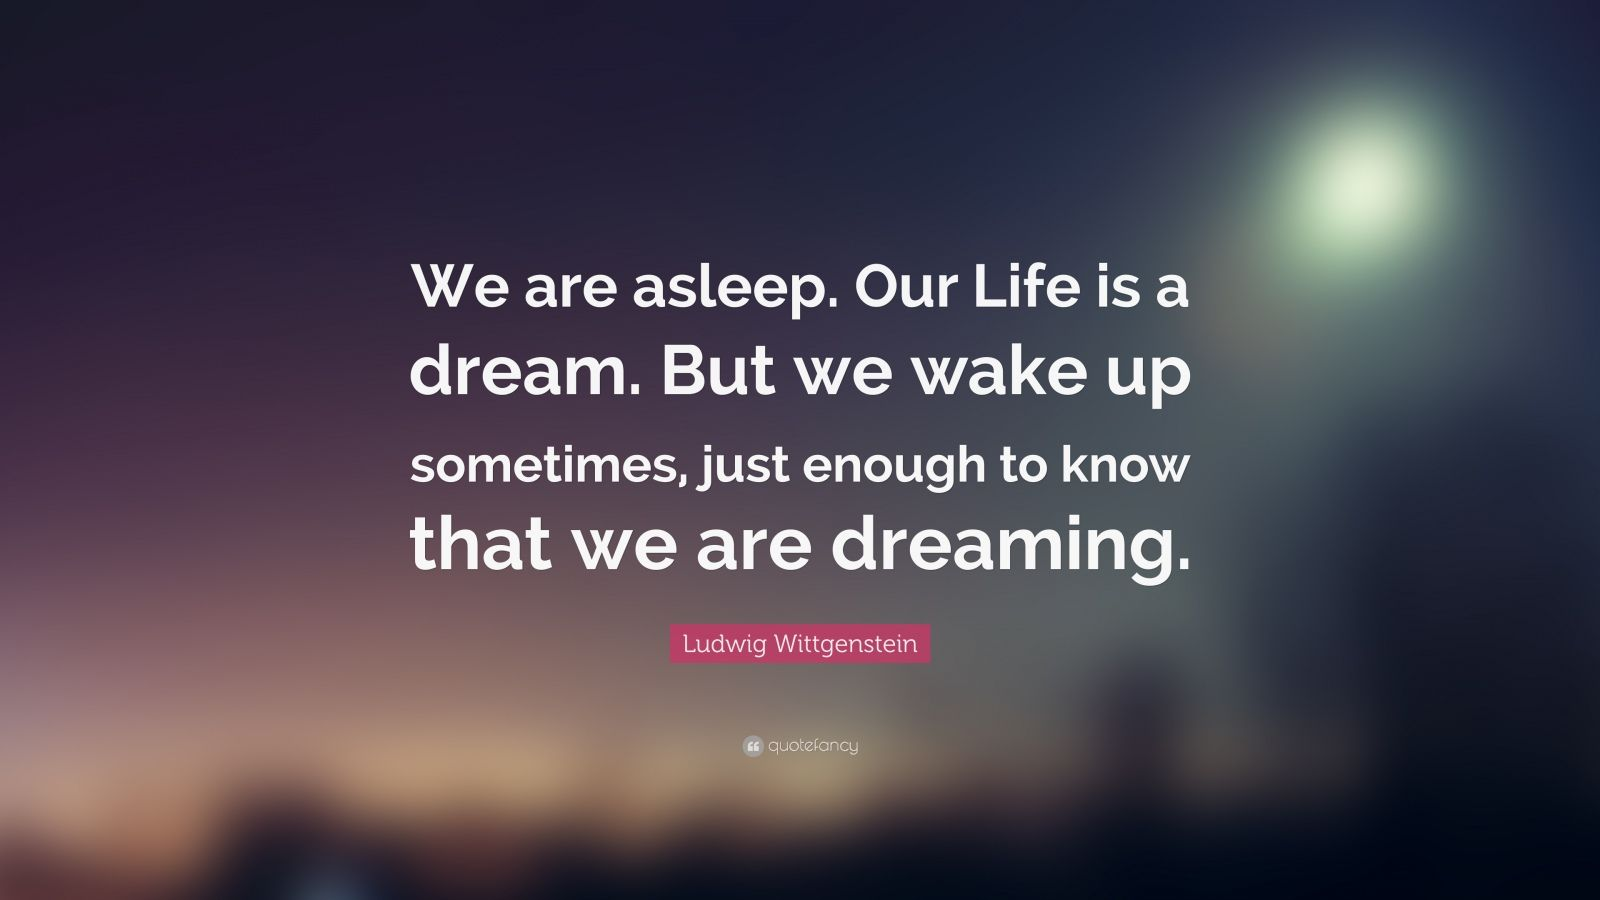 """Ludwig Wittgenstein Quote: """"We are asleep. Our Life is a dream. But we wake up sometimes, just enough to know that we are dreaming."""""""